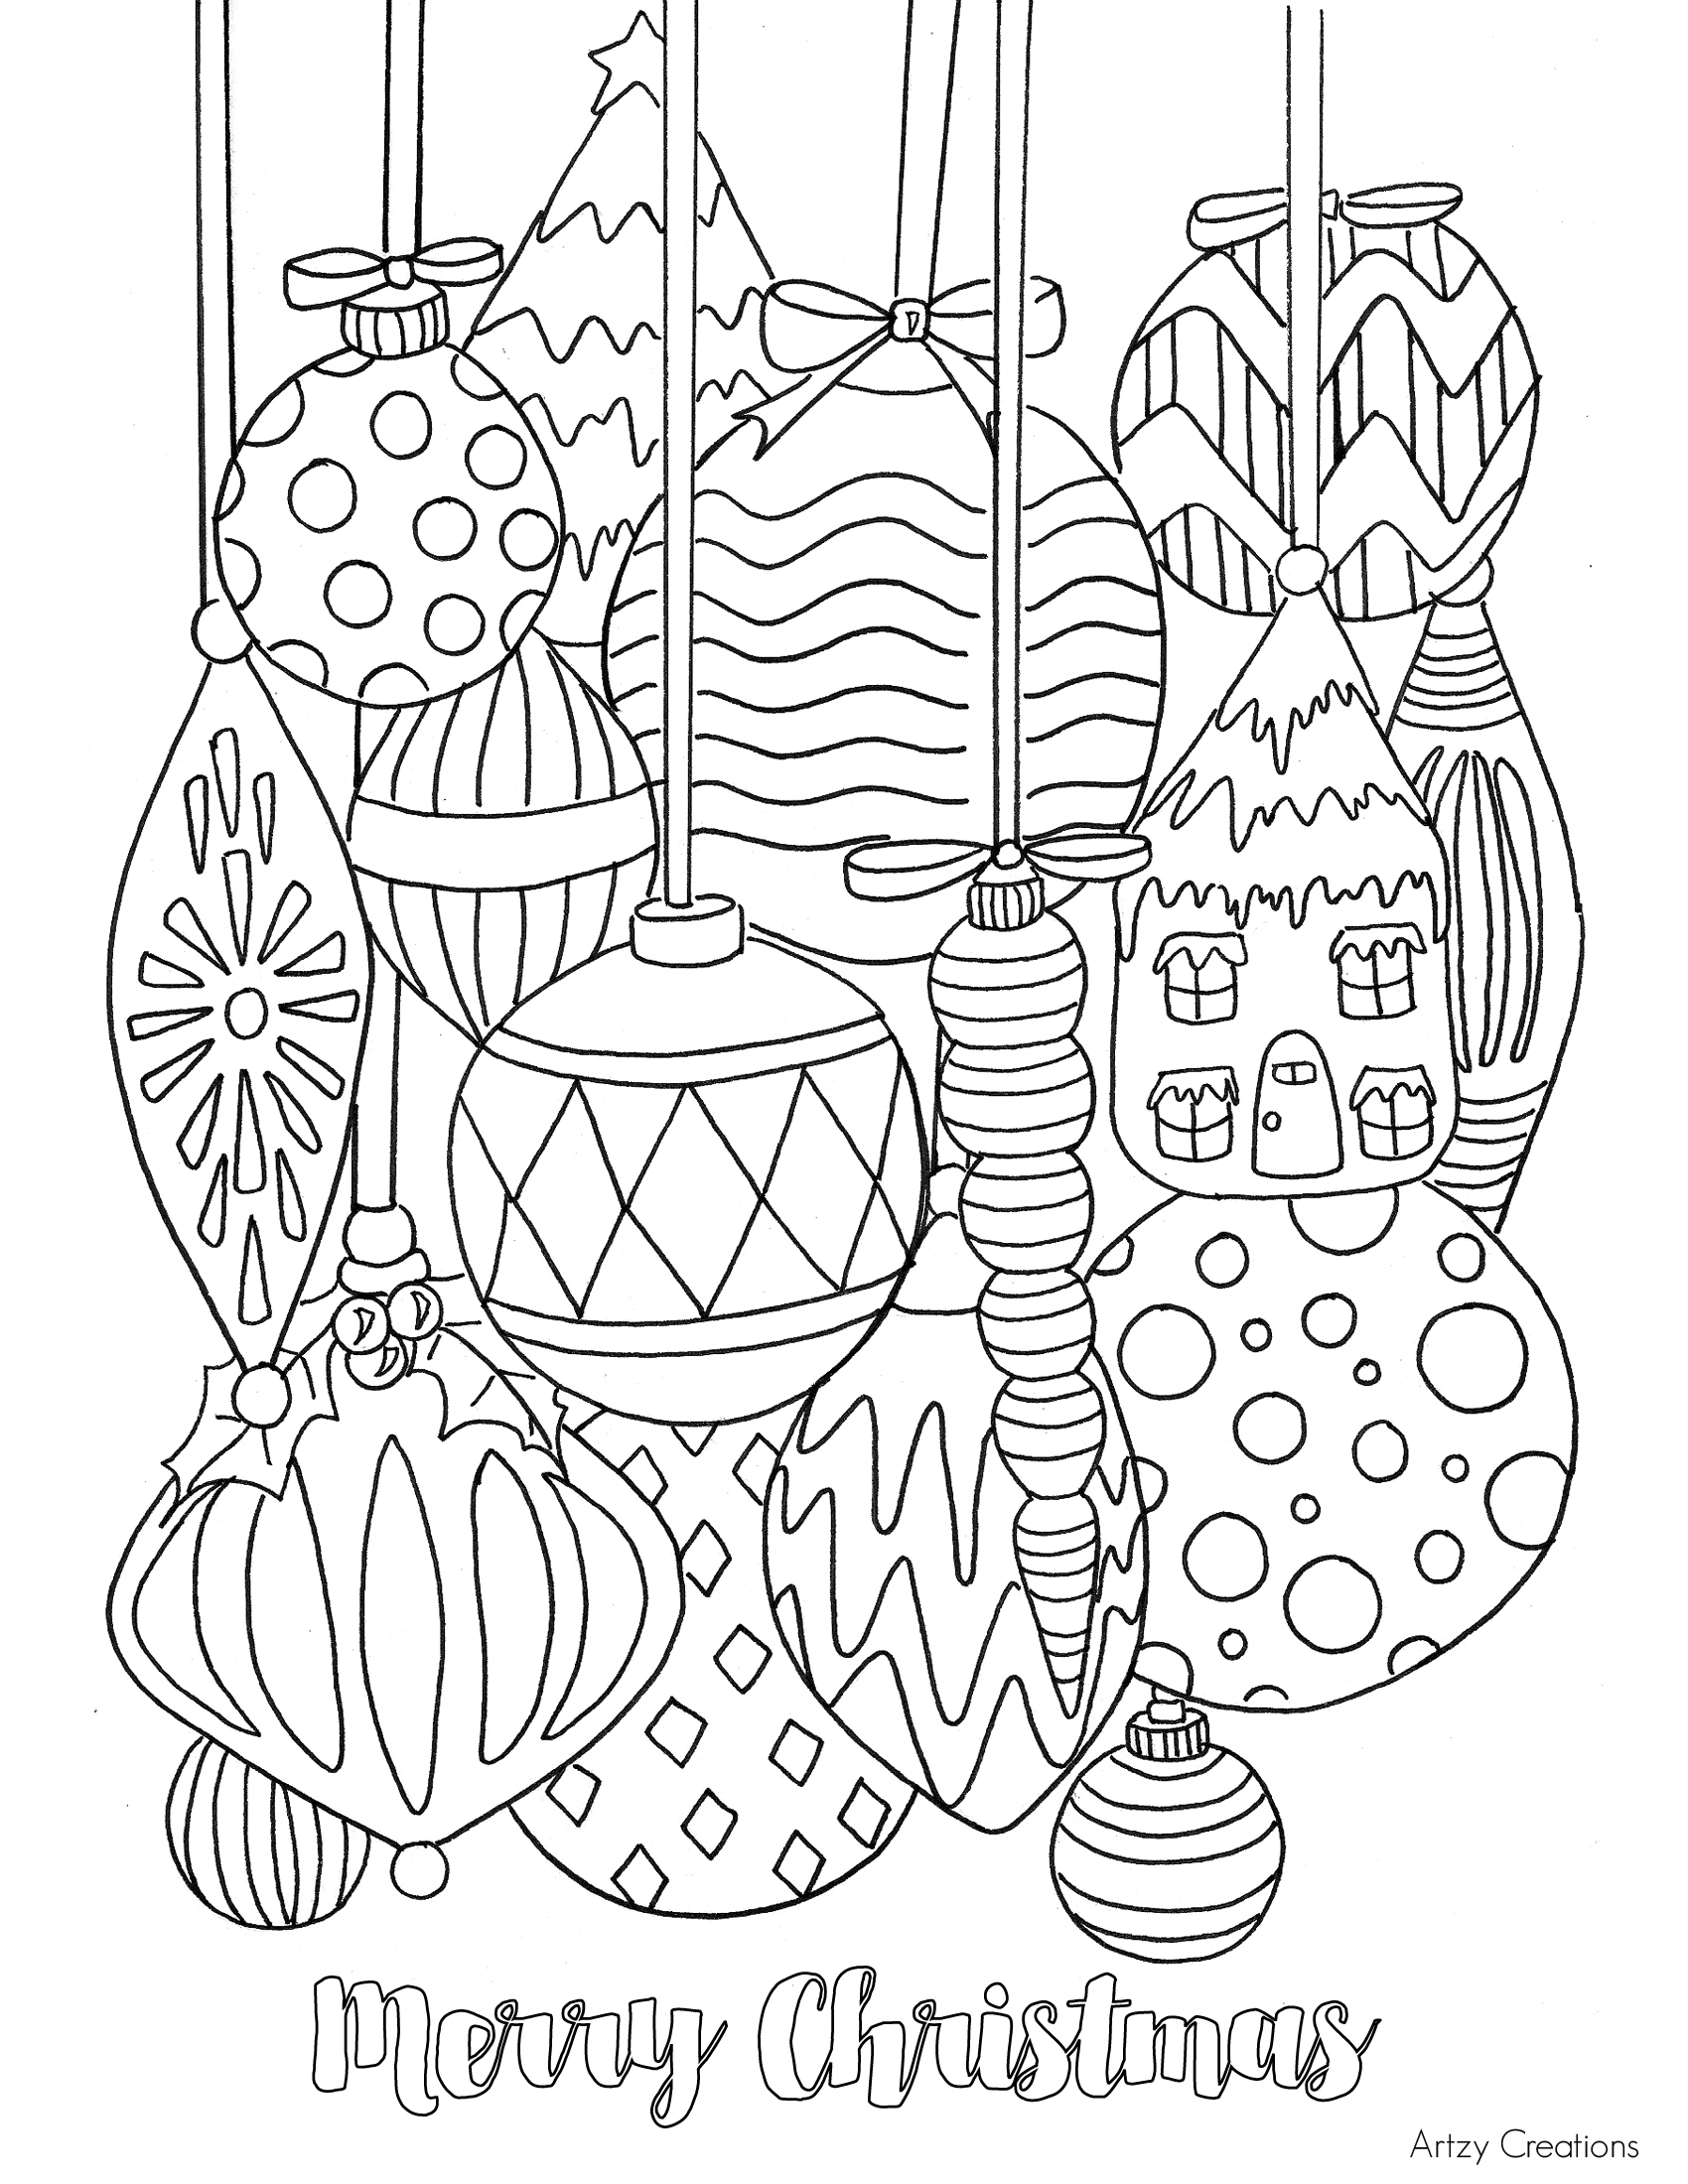 Christmas Coloring Pages Printable For Adults With Free To Print